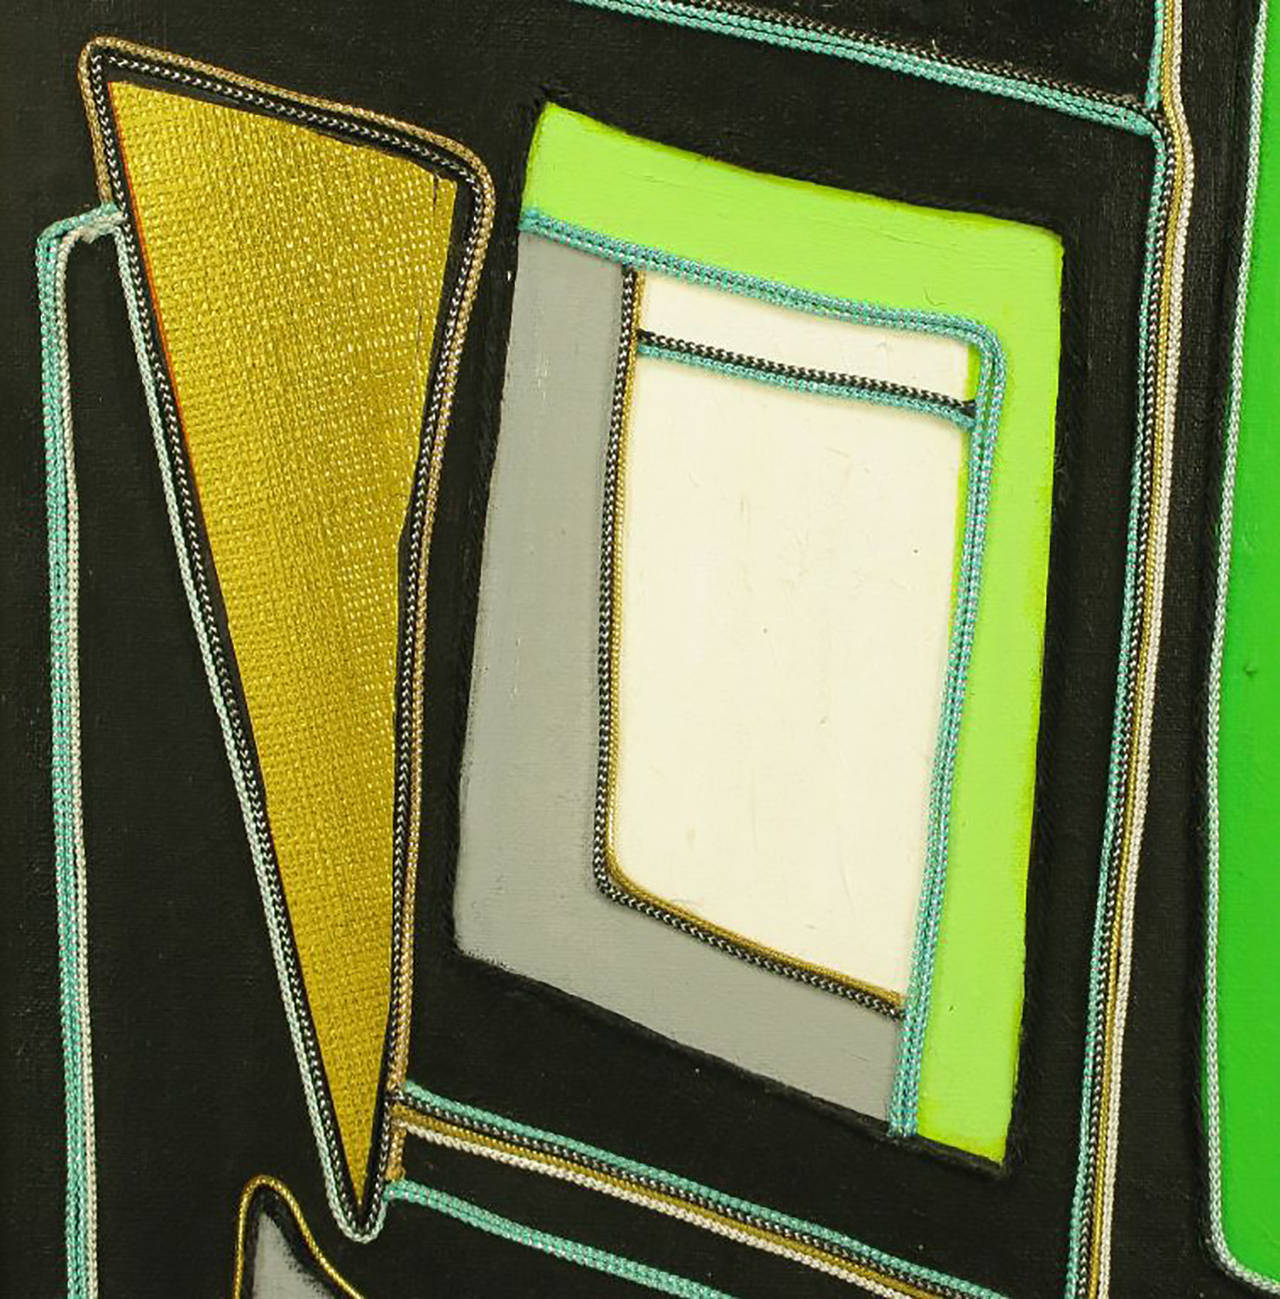 Green Black and Gold Mixed Media Abstract Painting Signed H. Minnick In Excellent Condition For Sale In Chicago, IL